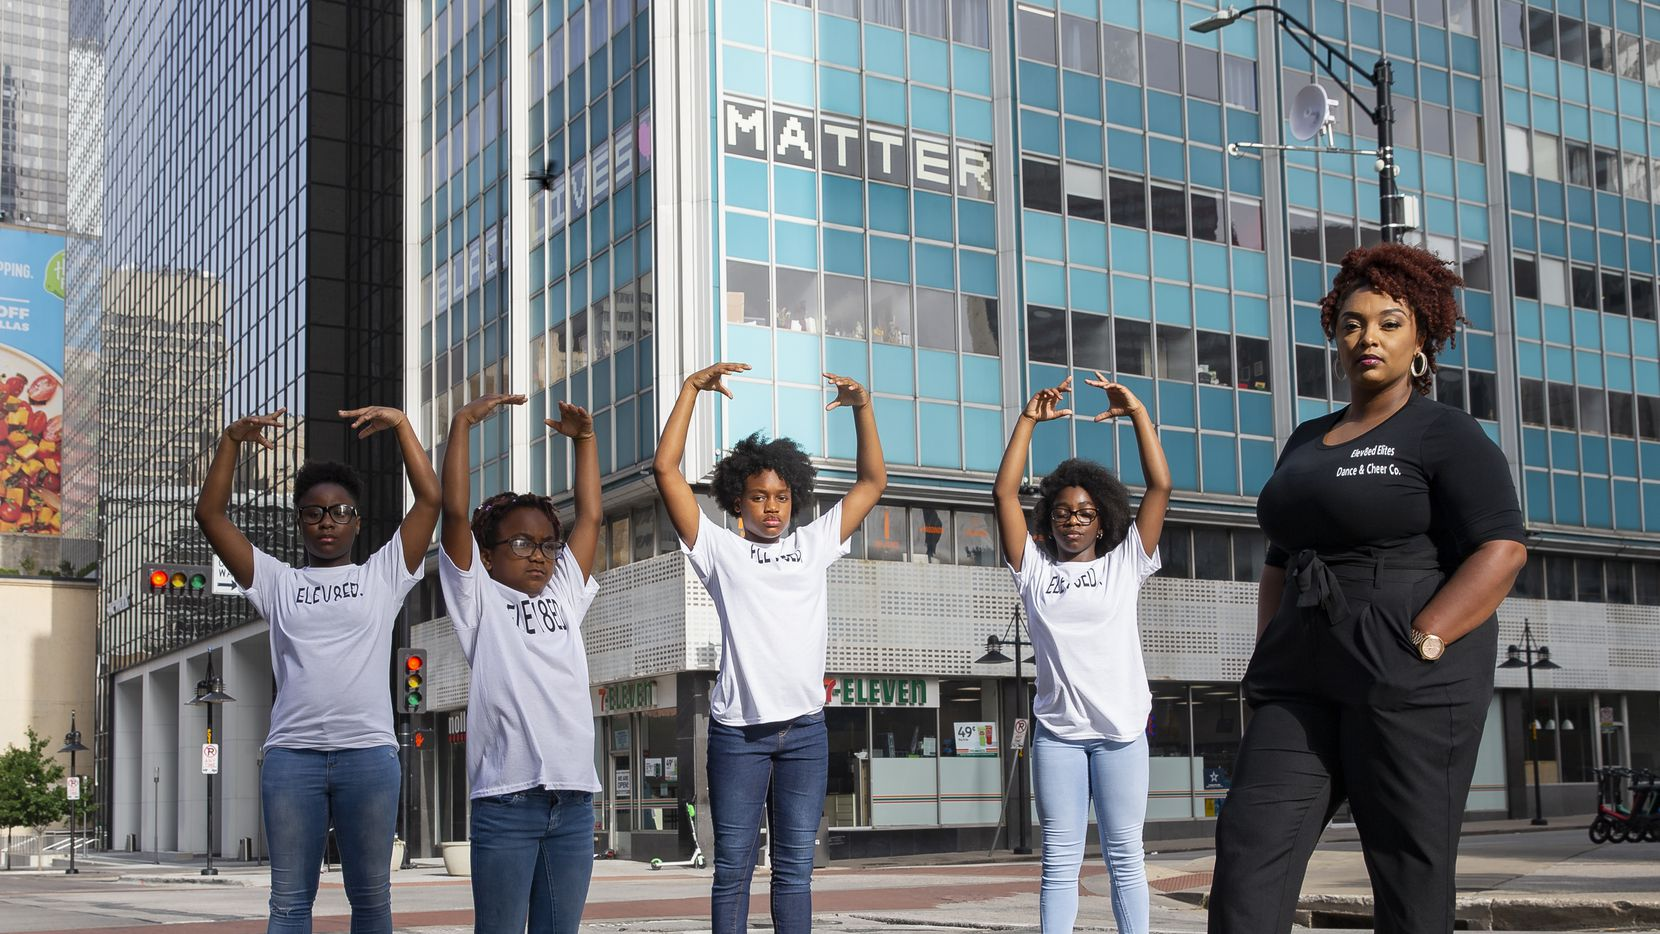 (From left) Members of Elev8ed Elites Dance, Janyiah Cooks, 12, Arianna Roberts, 7, Shakyra Roberts, 13, Zaria Fisher, 10, and dance director Shantrail White pose for a photo on June 27, 2020 in Downtown Dallas. Elev8ed Elites is an all girls dance team that shot a video downtown in response to police brutality shortly after George Floyd died. (Juan Figueroa/ The Dallas Morning News)